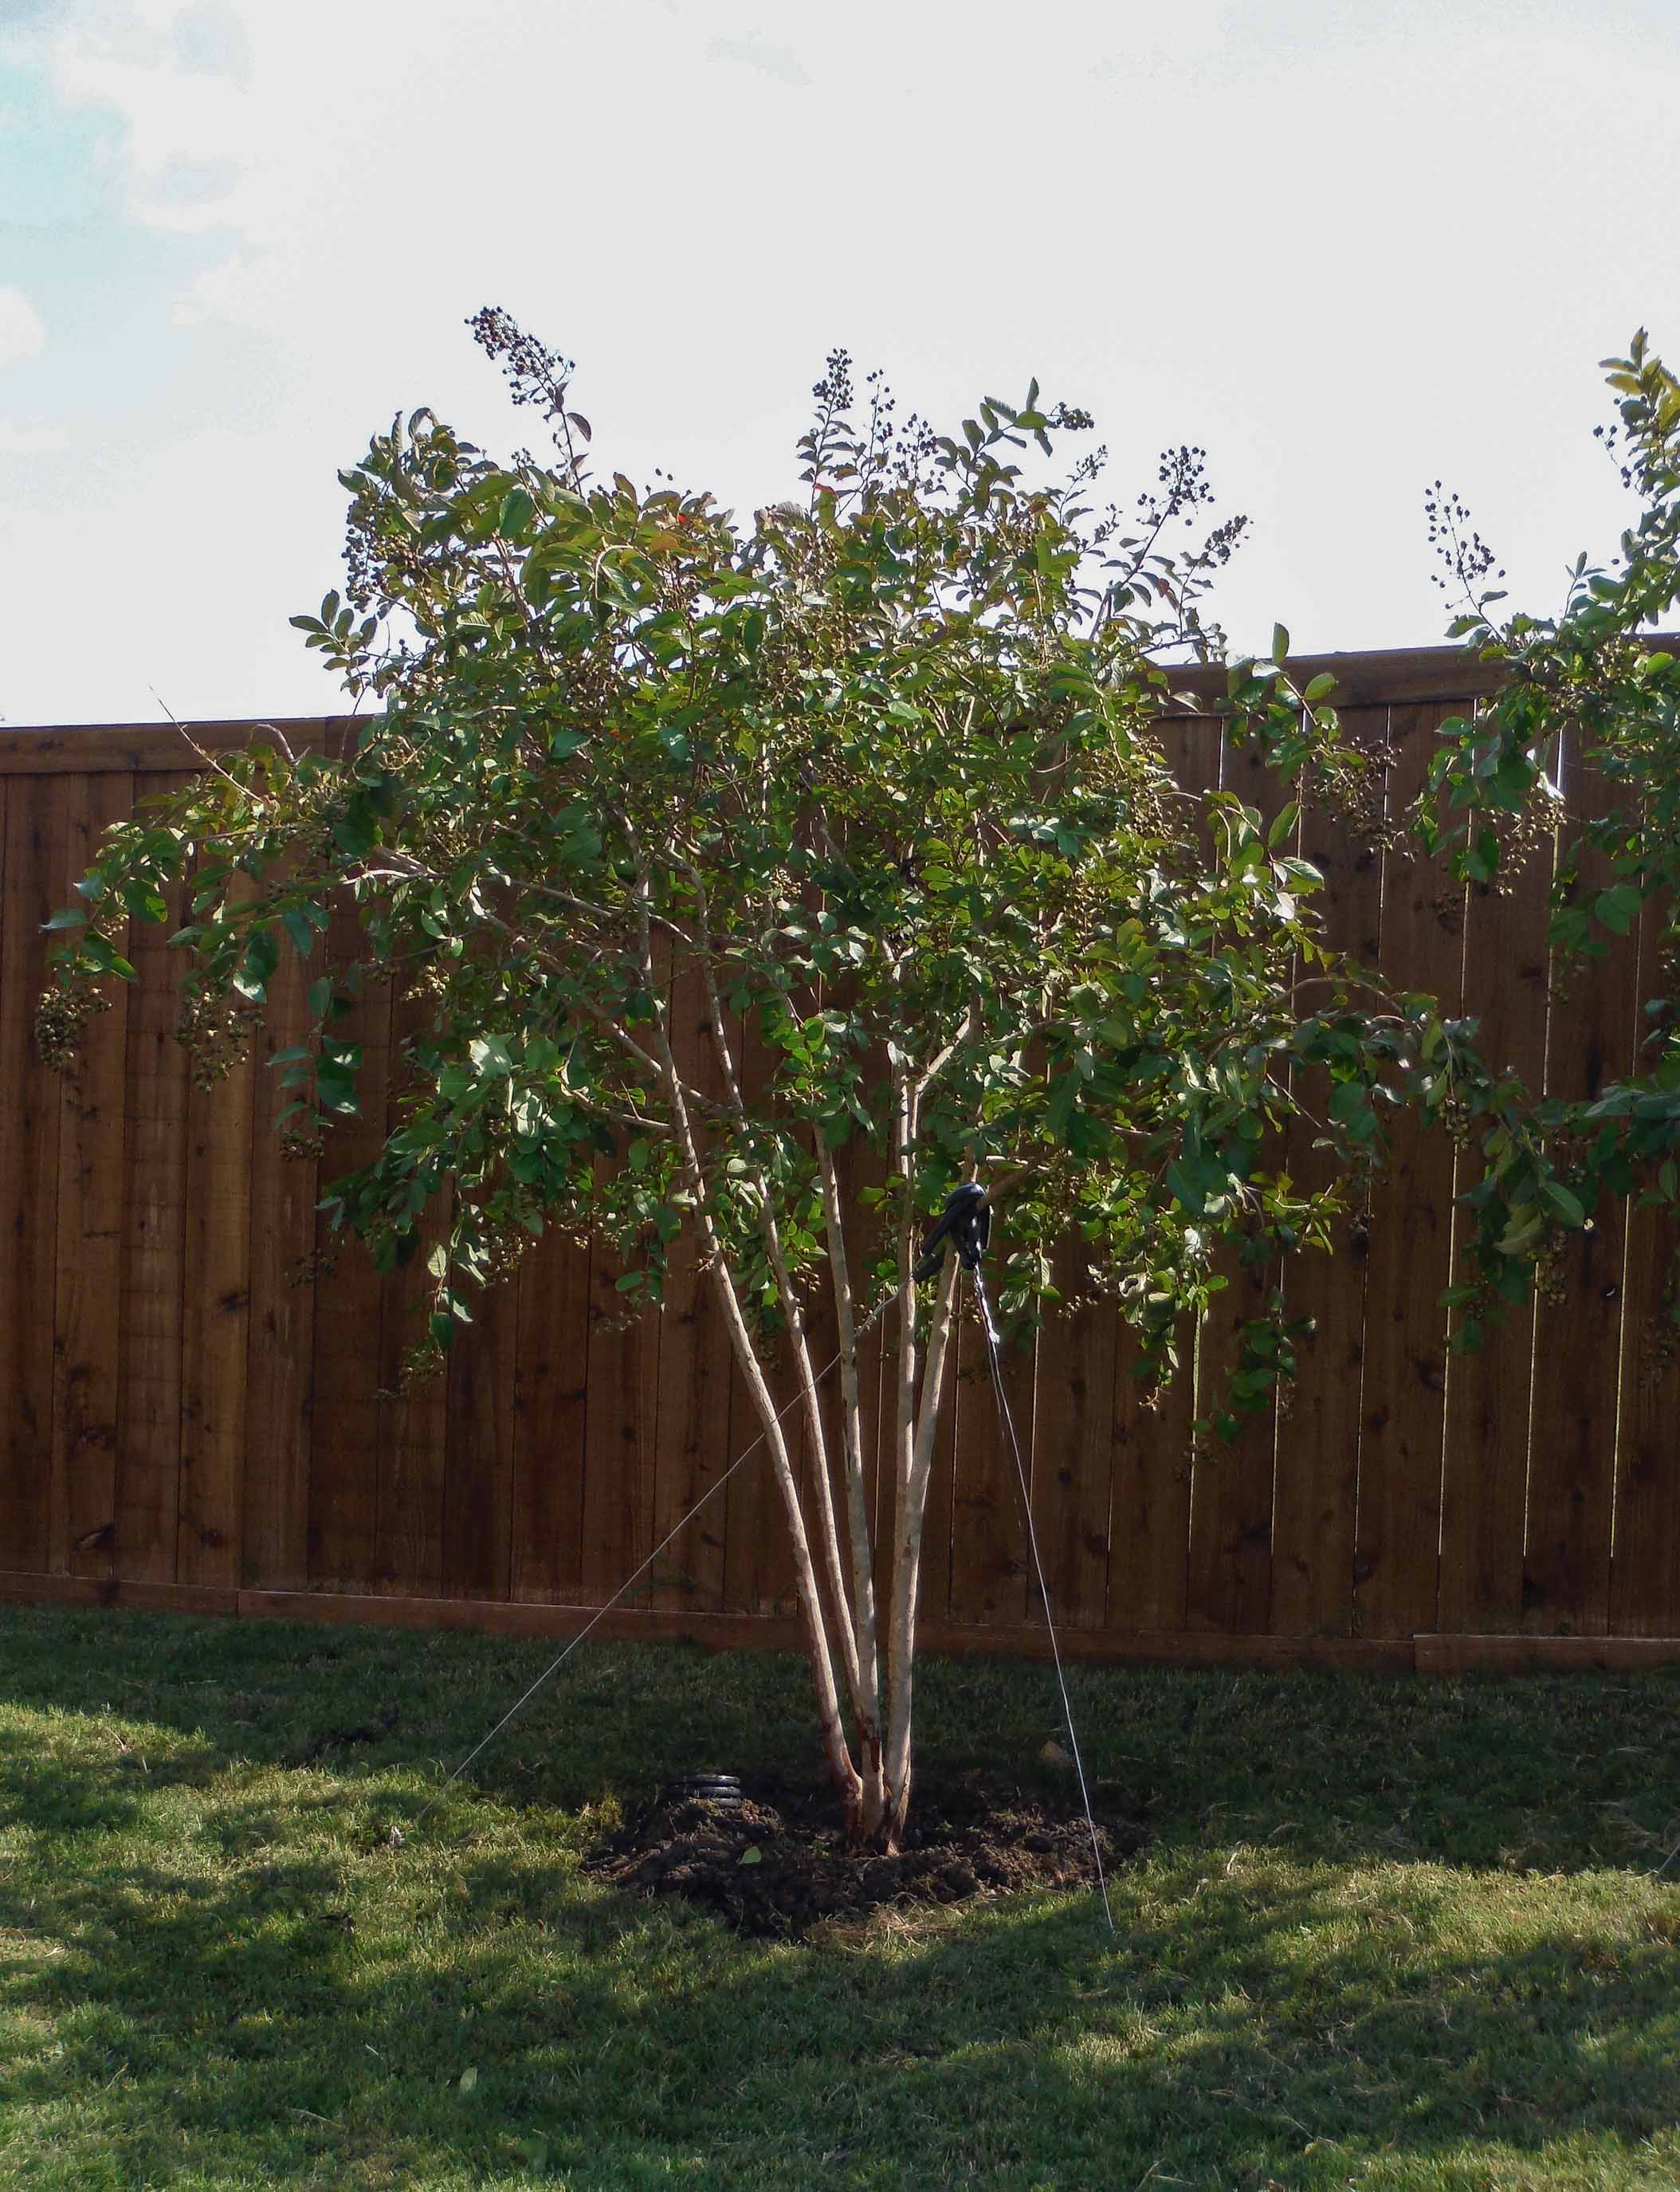 Natchez Crape Myrtles installed in a backyard by Treeland Nursery.